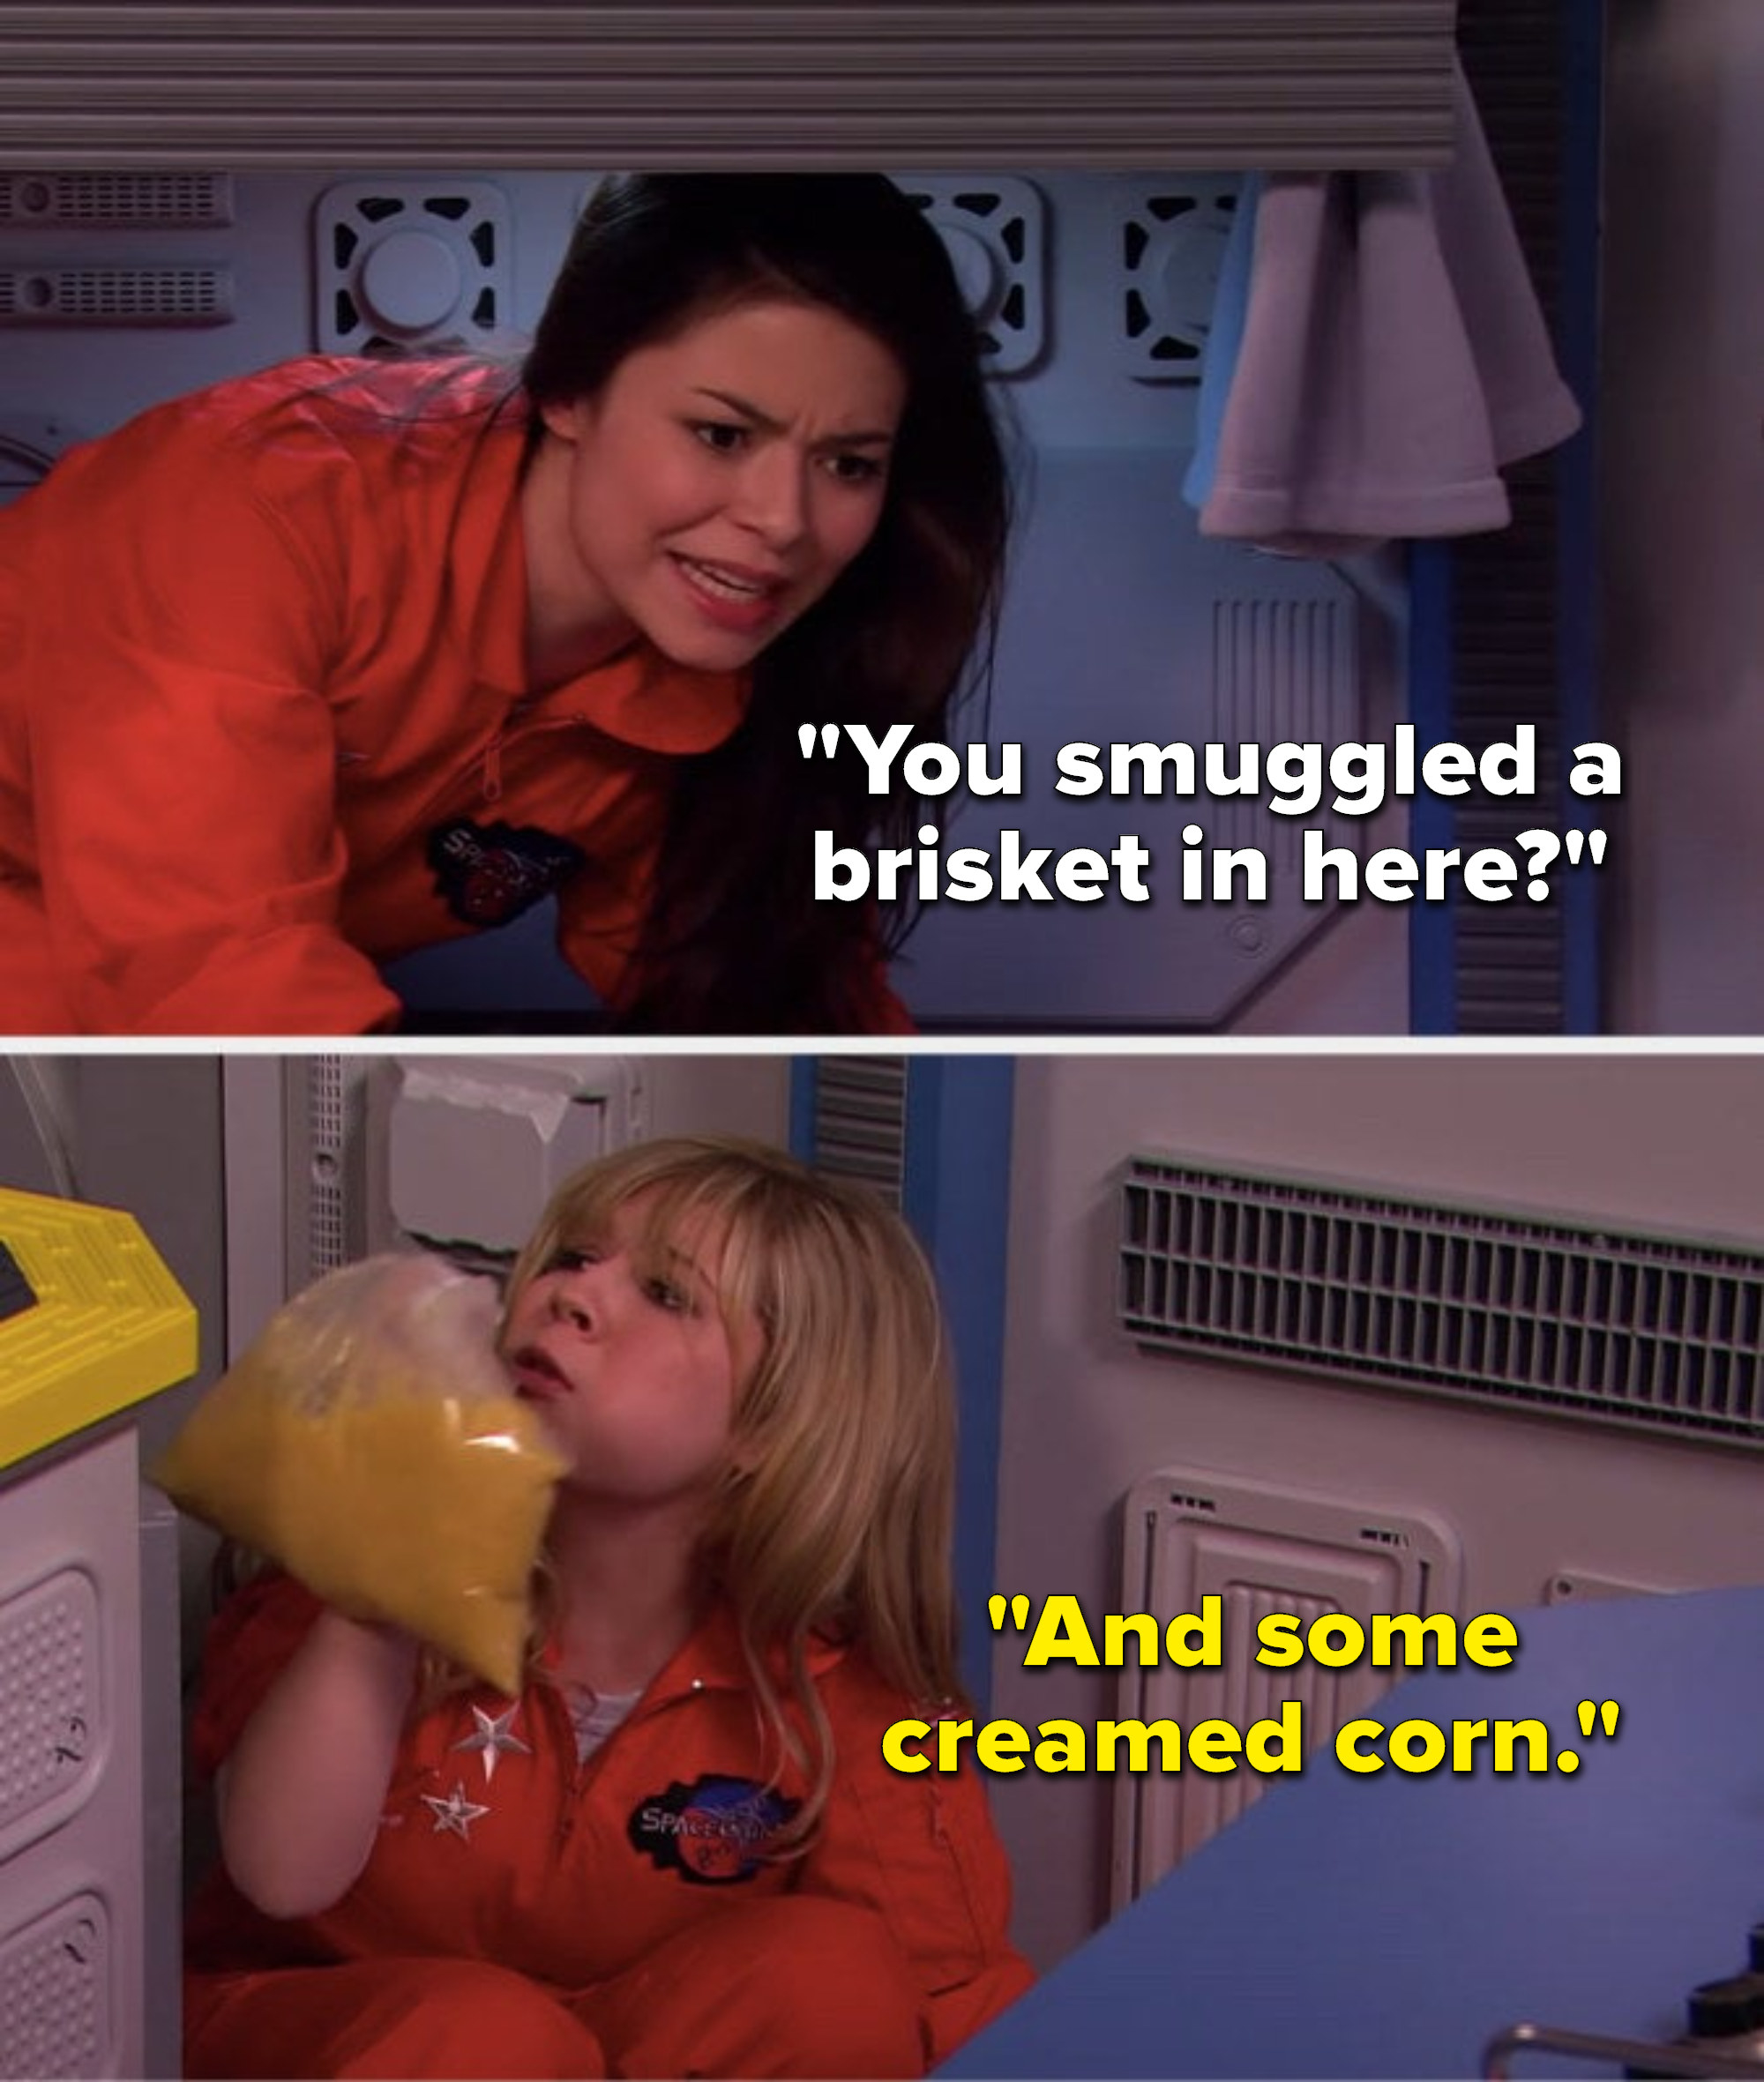 """In a mock space capsule Carly asks, """"You smuggled a brisket in here?"""" and Sam says, """"And some creamed corn,"""" while holding up a bag full of creamed corn"""